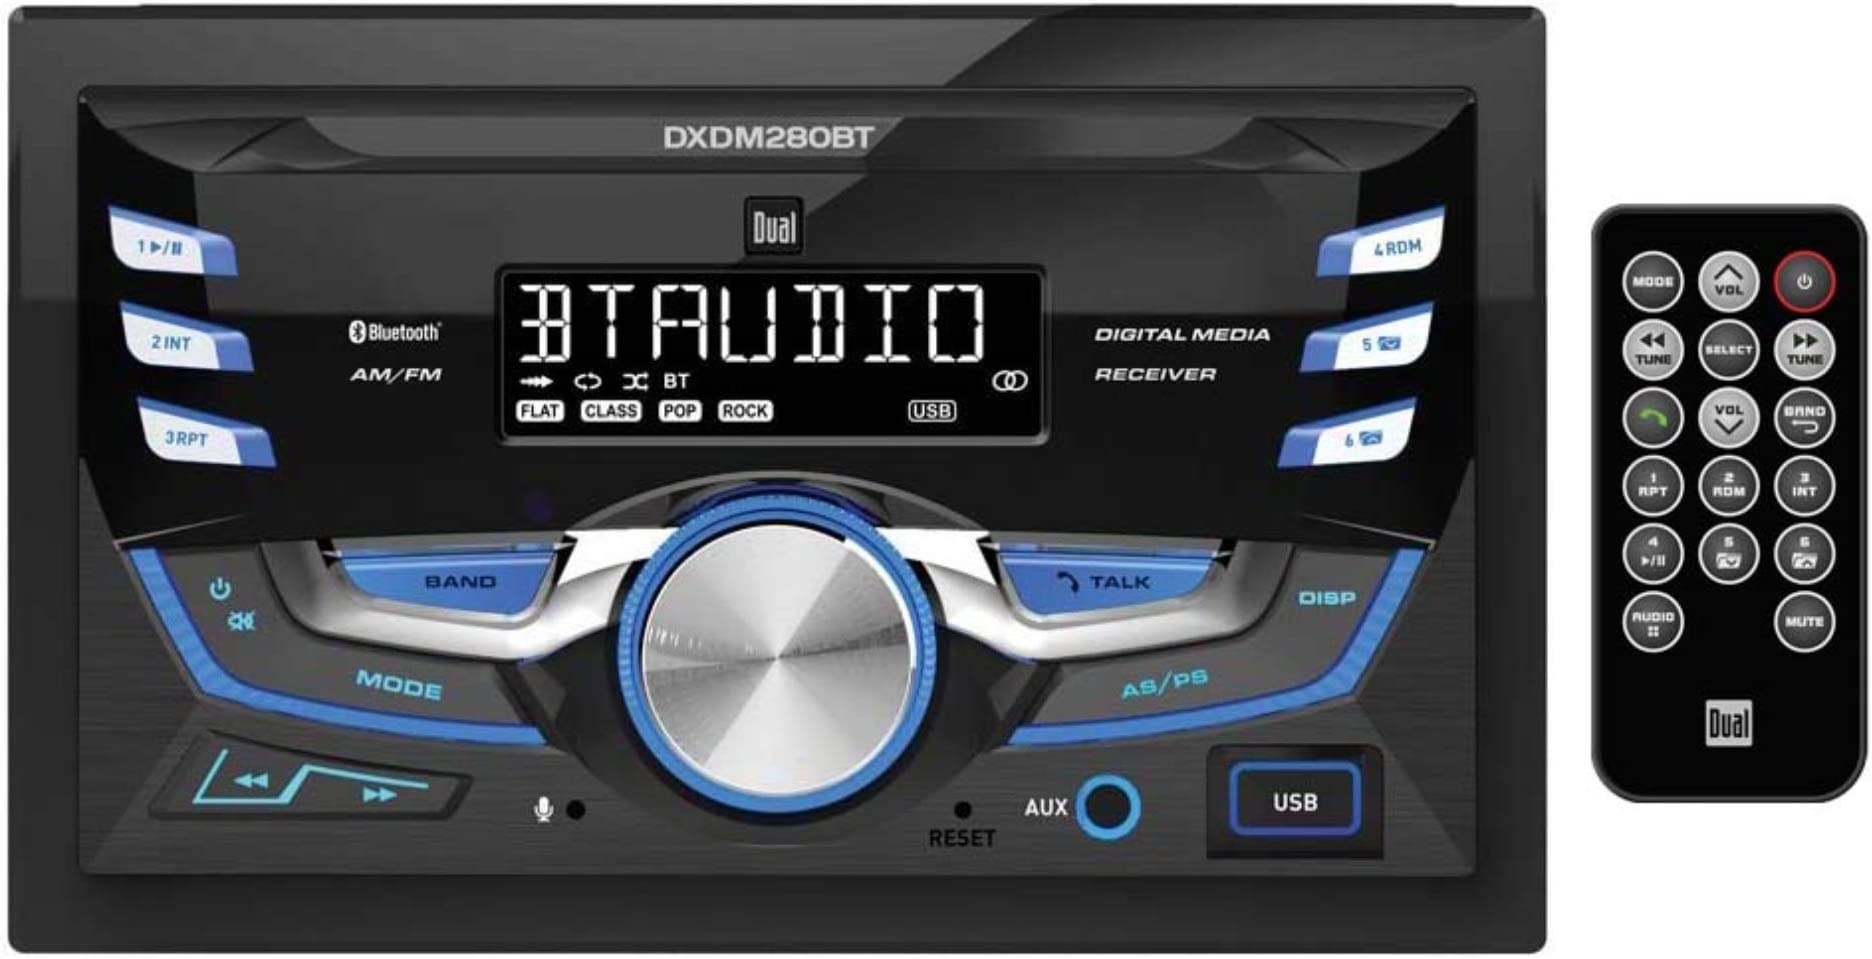 DXDM280BT Multimedia LCD High Resolution Double DIN Car Stereo Receiver with Built-in Bluetooth, CD, USB, MP3 & WMA Player